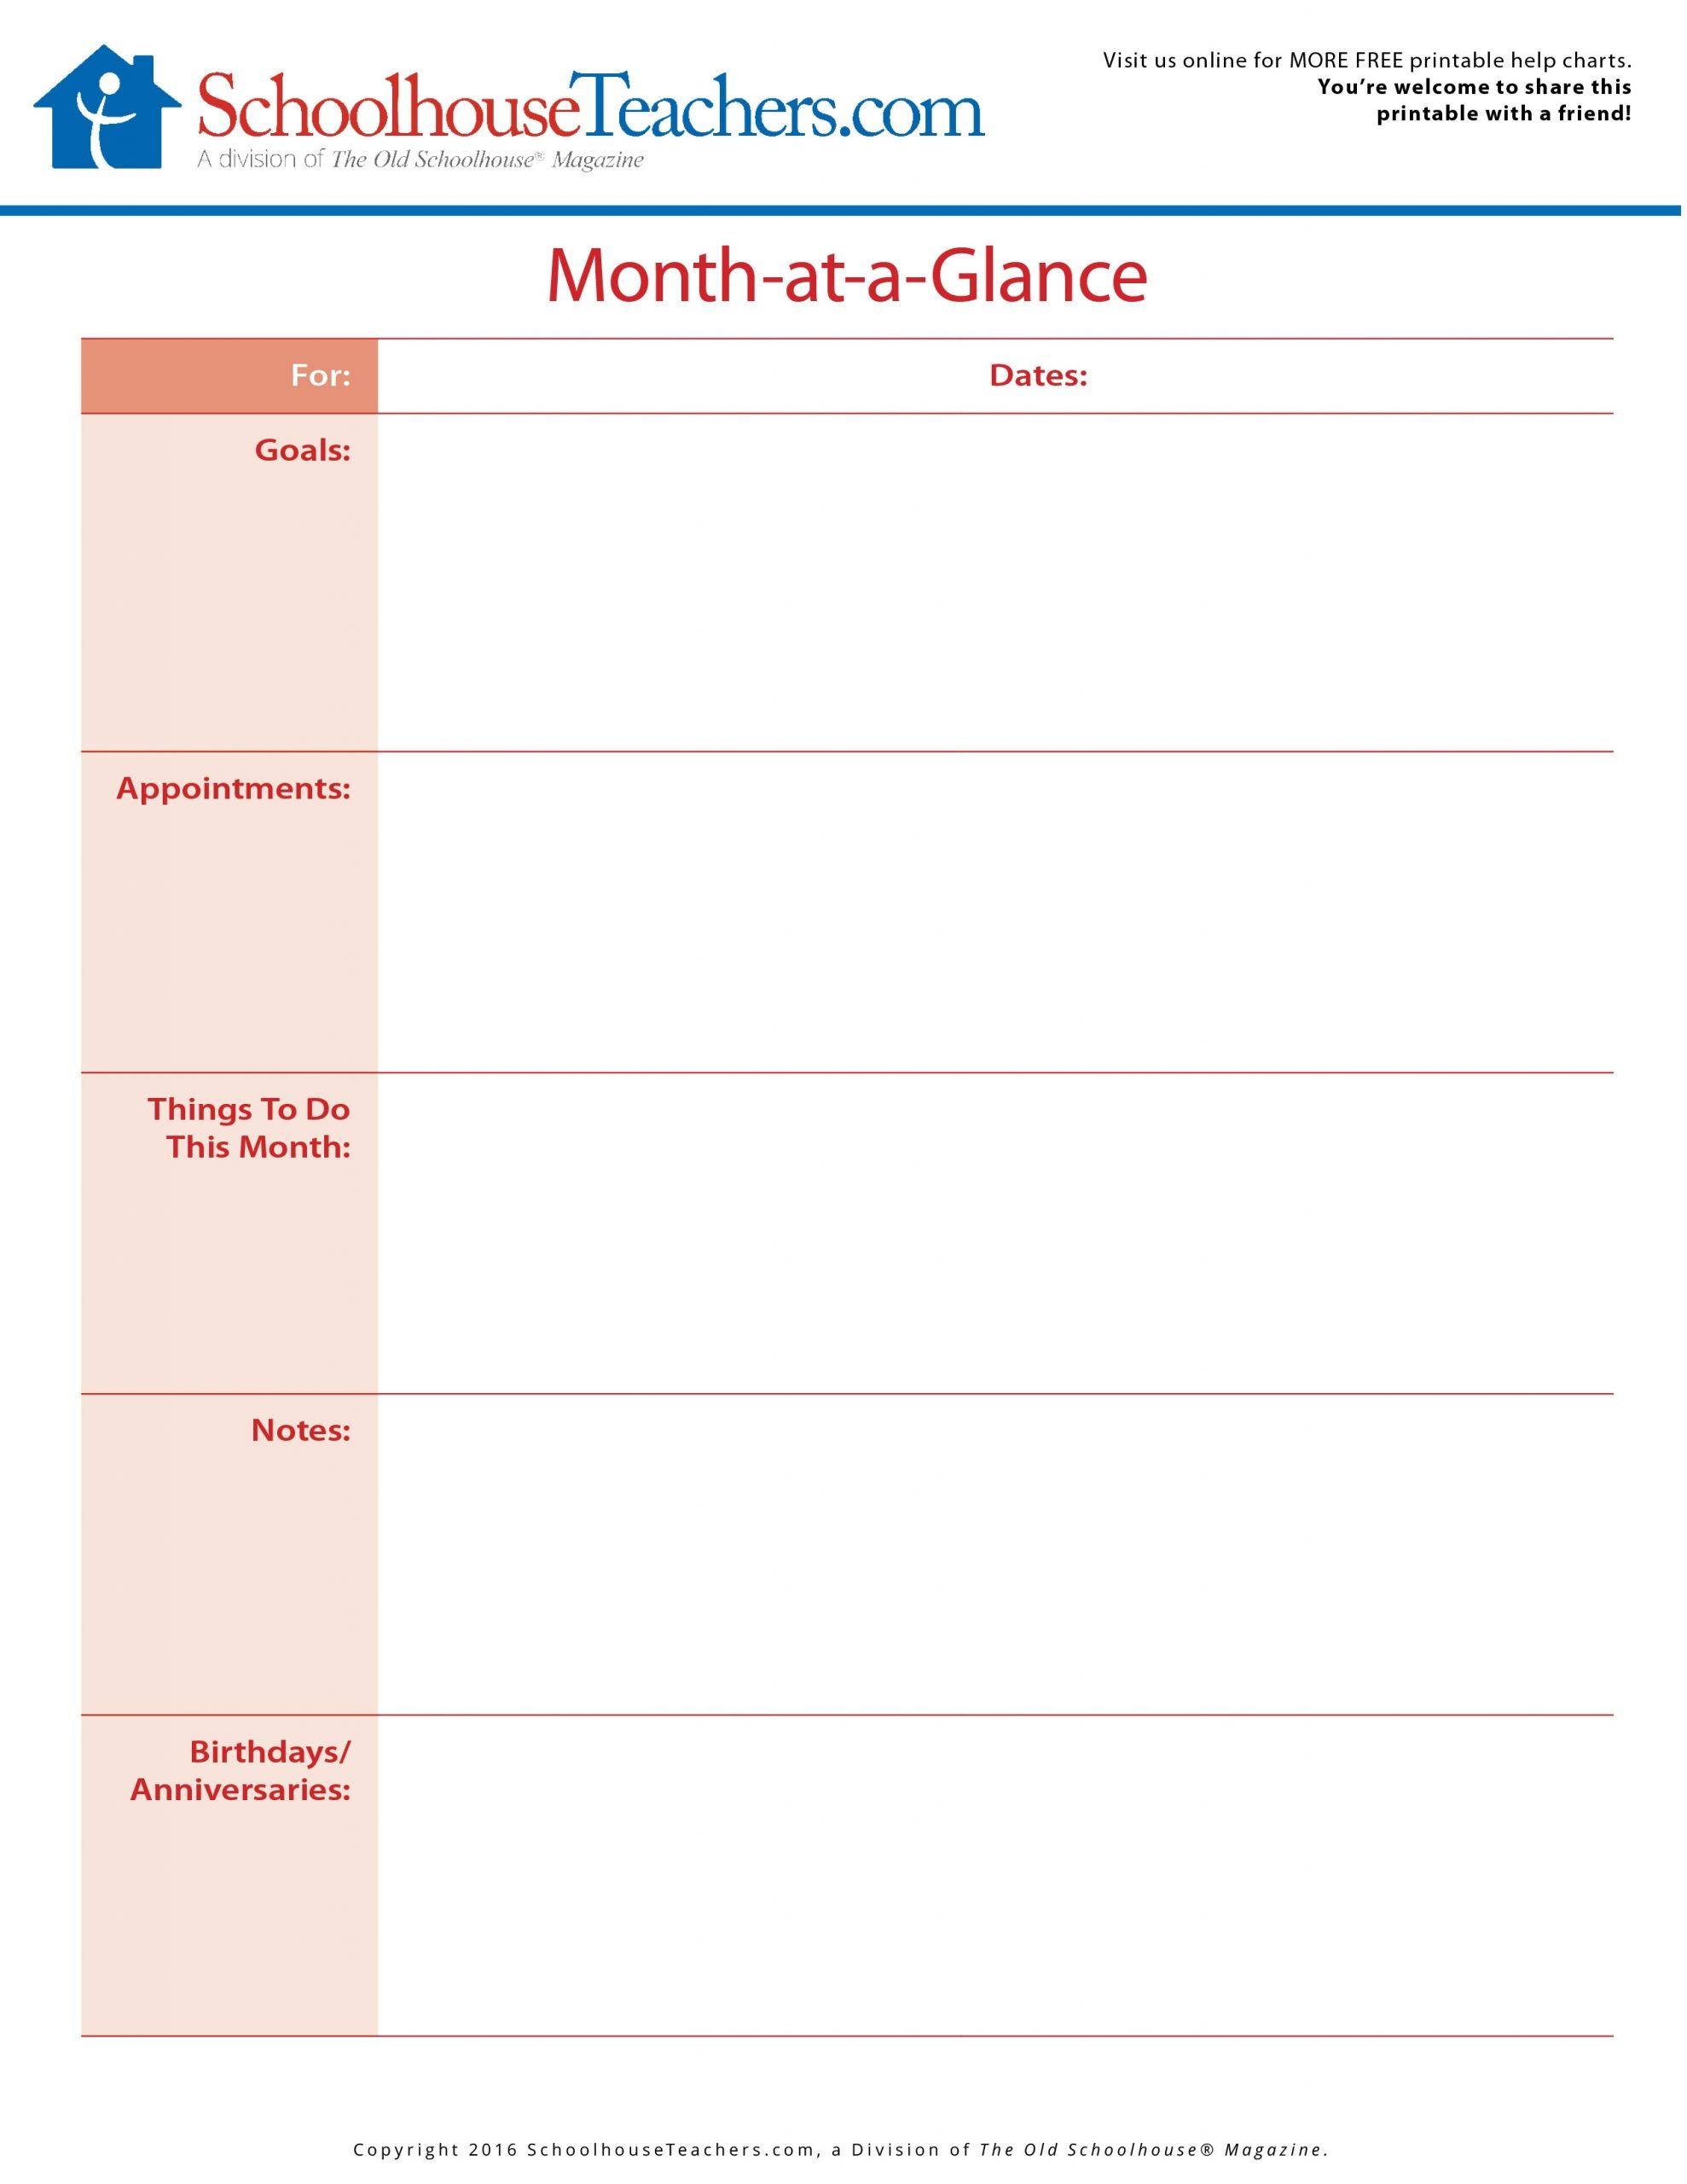 Collect A Month At A Glance